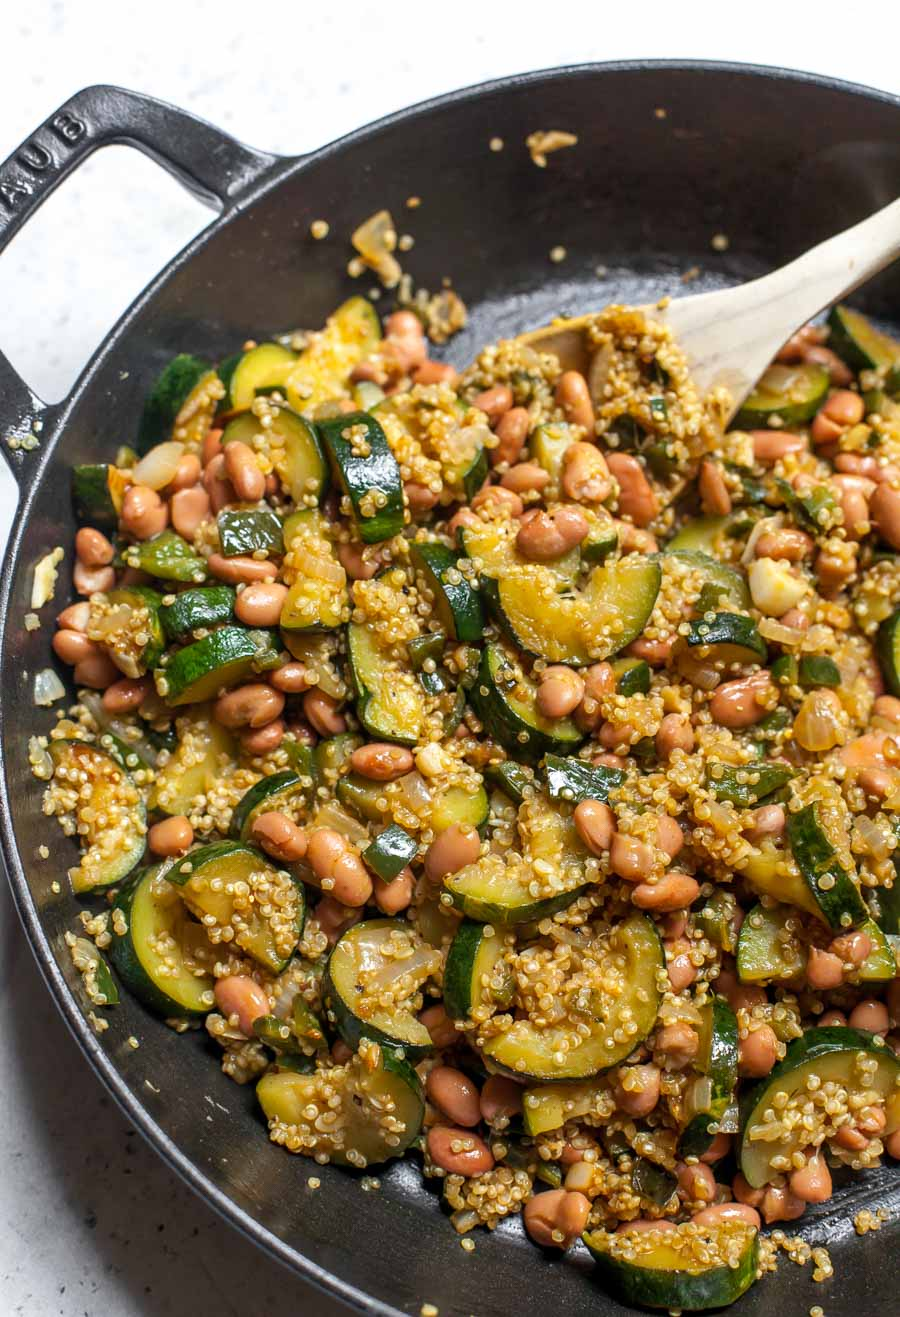 Sautéed vegetables, quinoa, and pinto beans